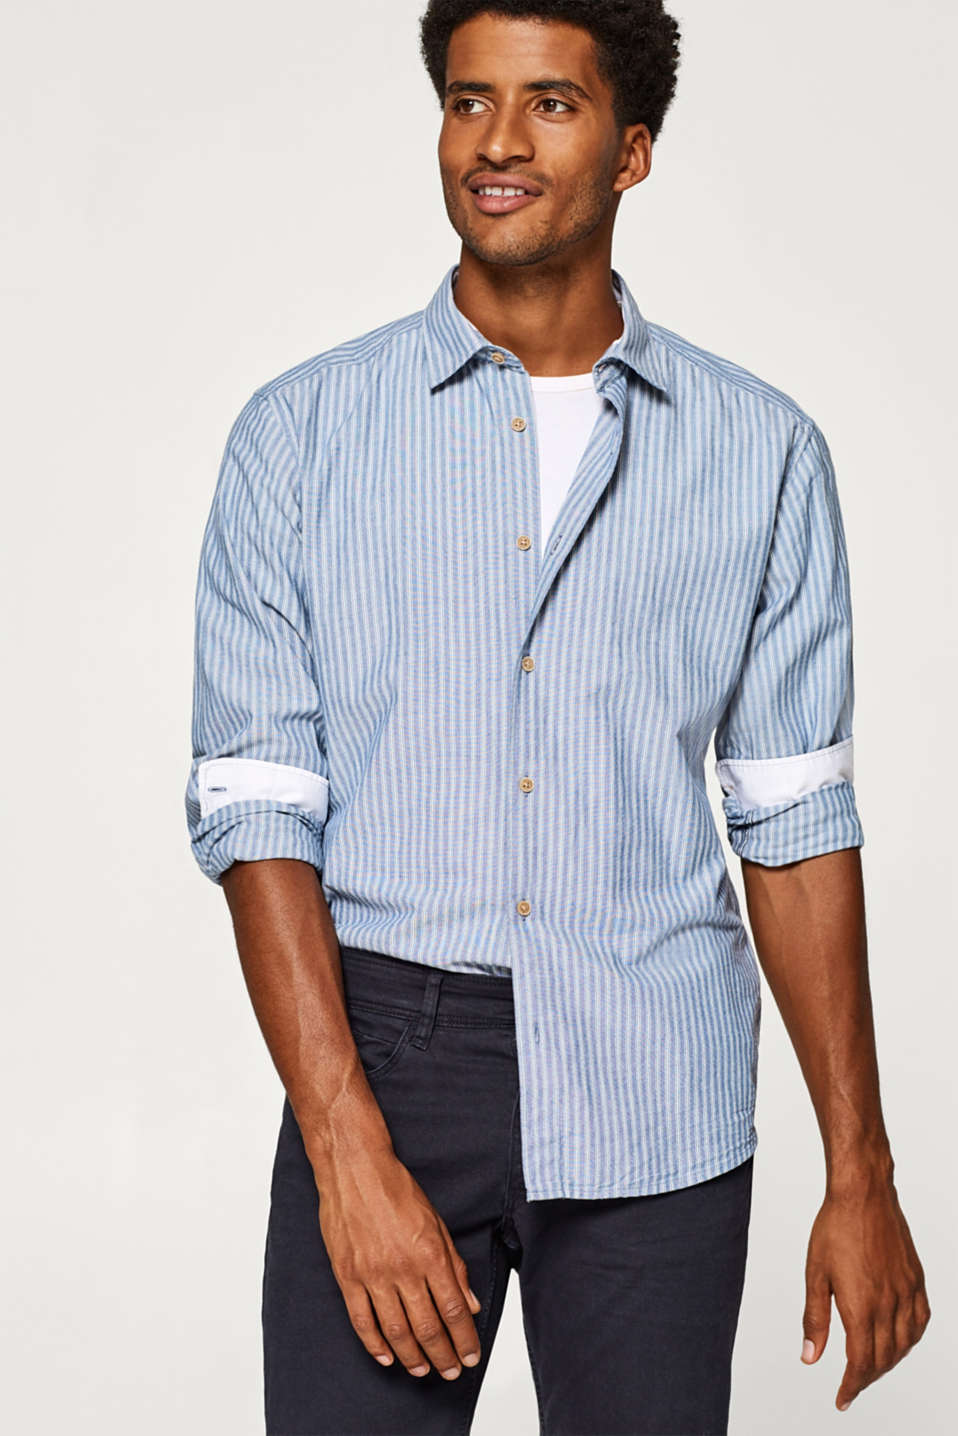 Esprit - Finely textured shirt in 100% cotton